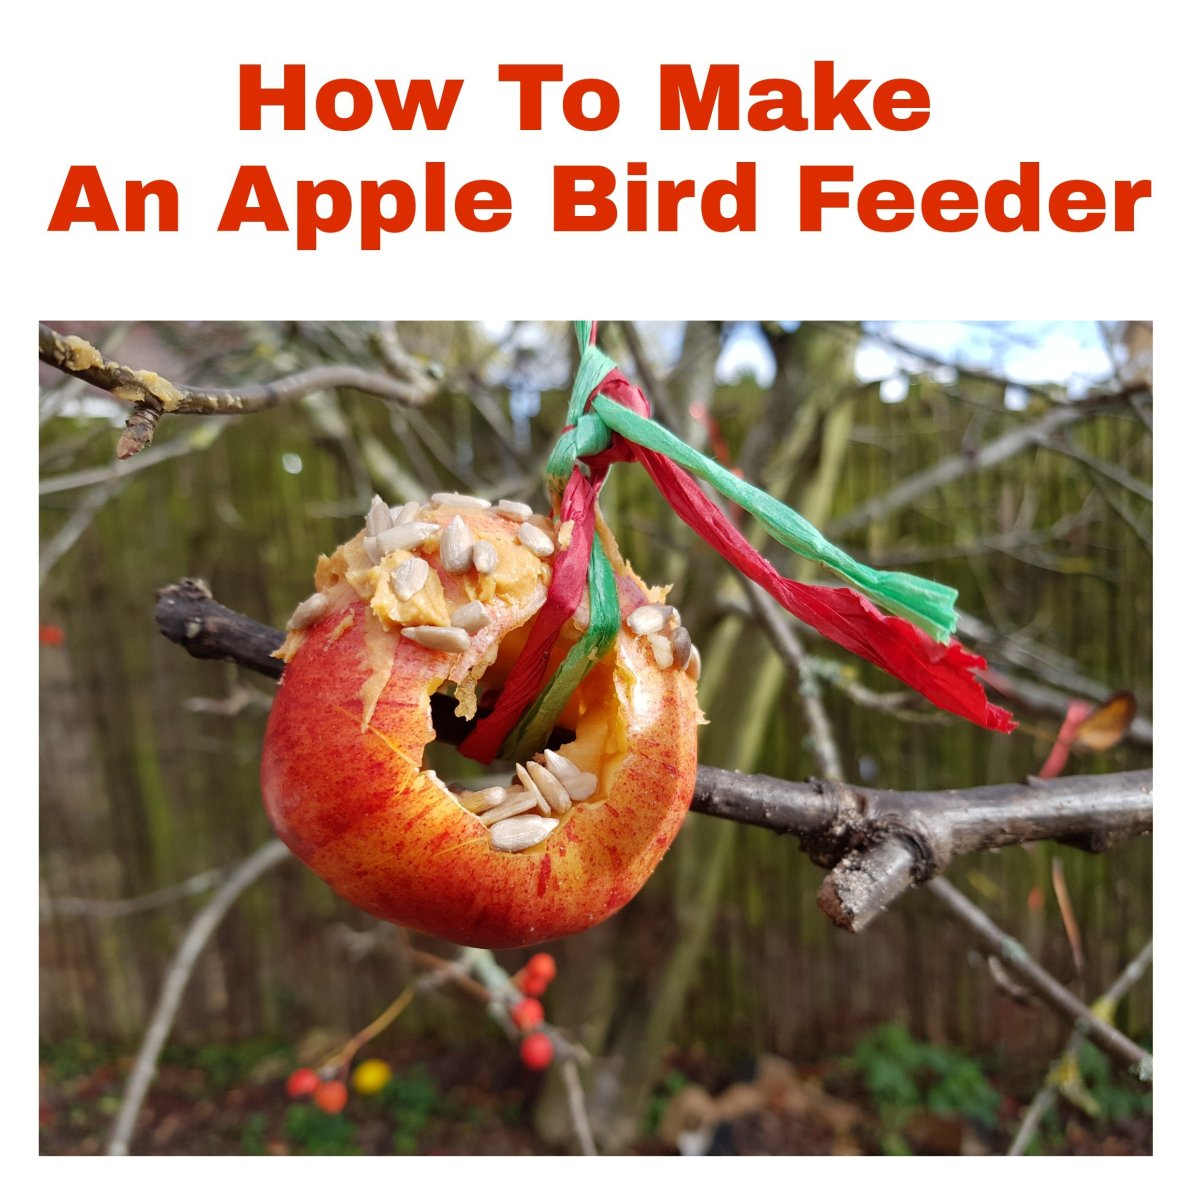 How To Make An Apple Bird Feeder: Protecting Birds in Winter